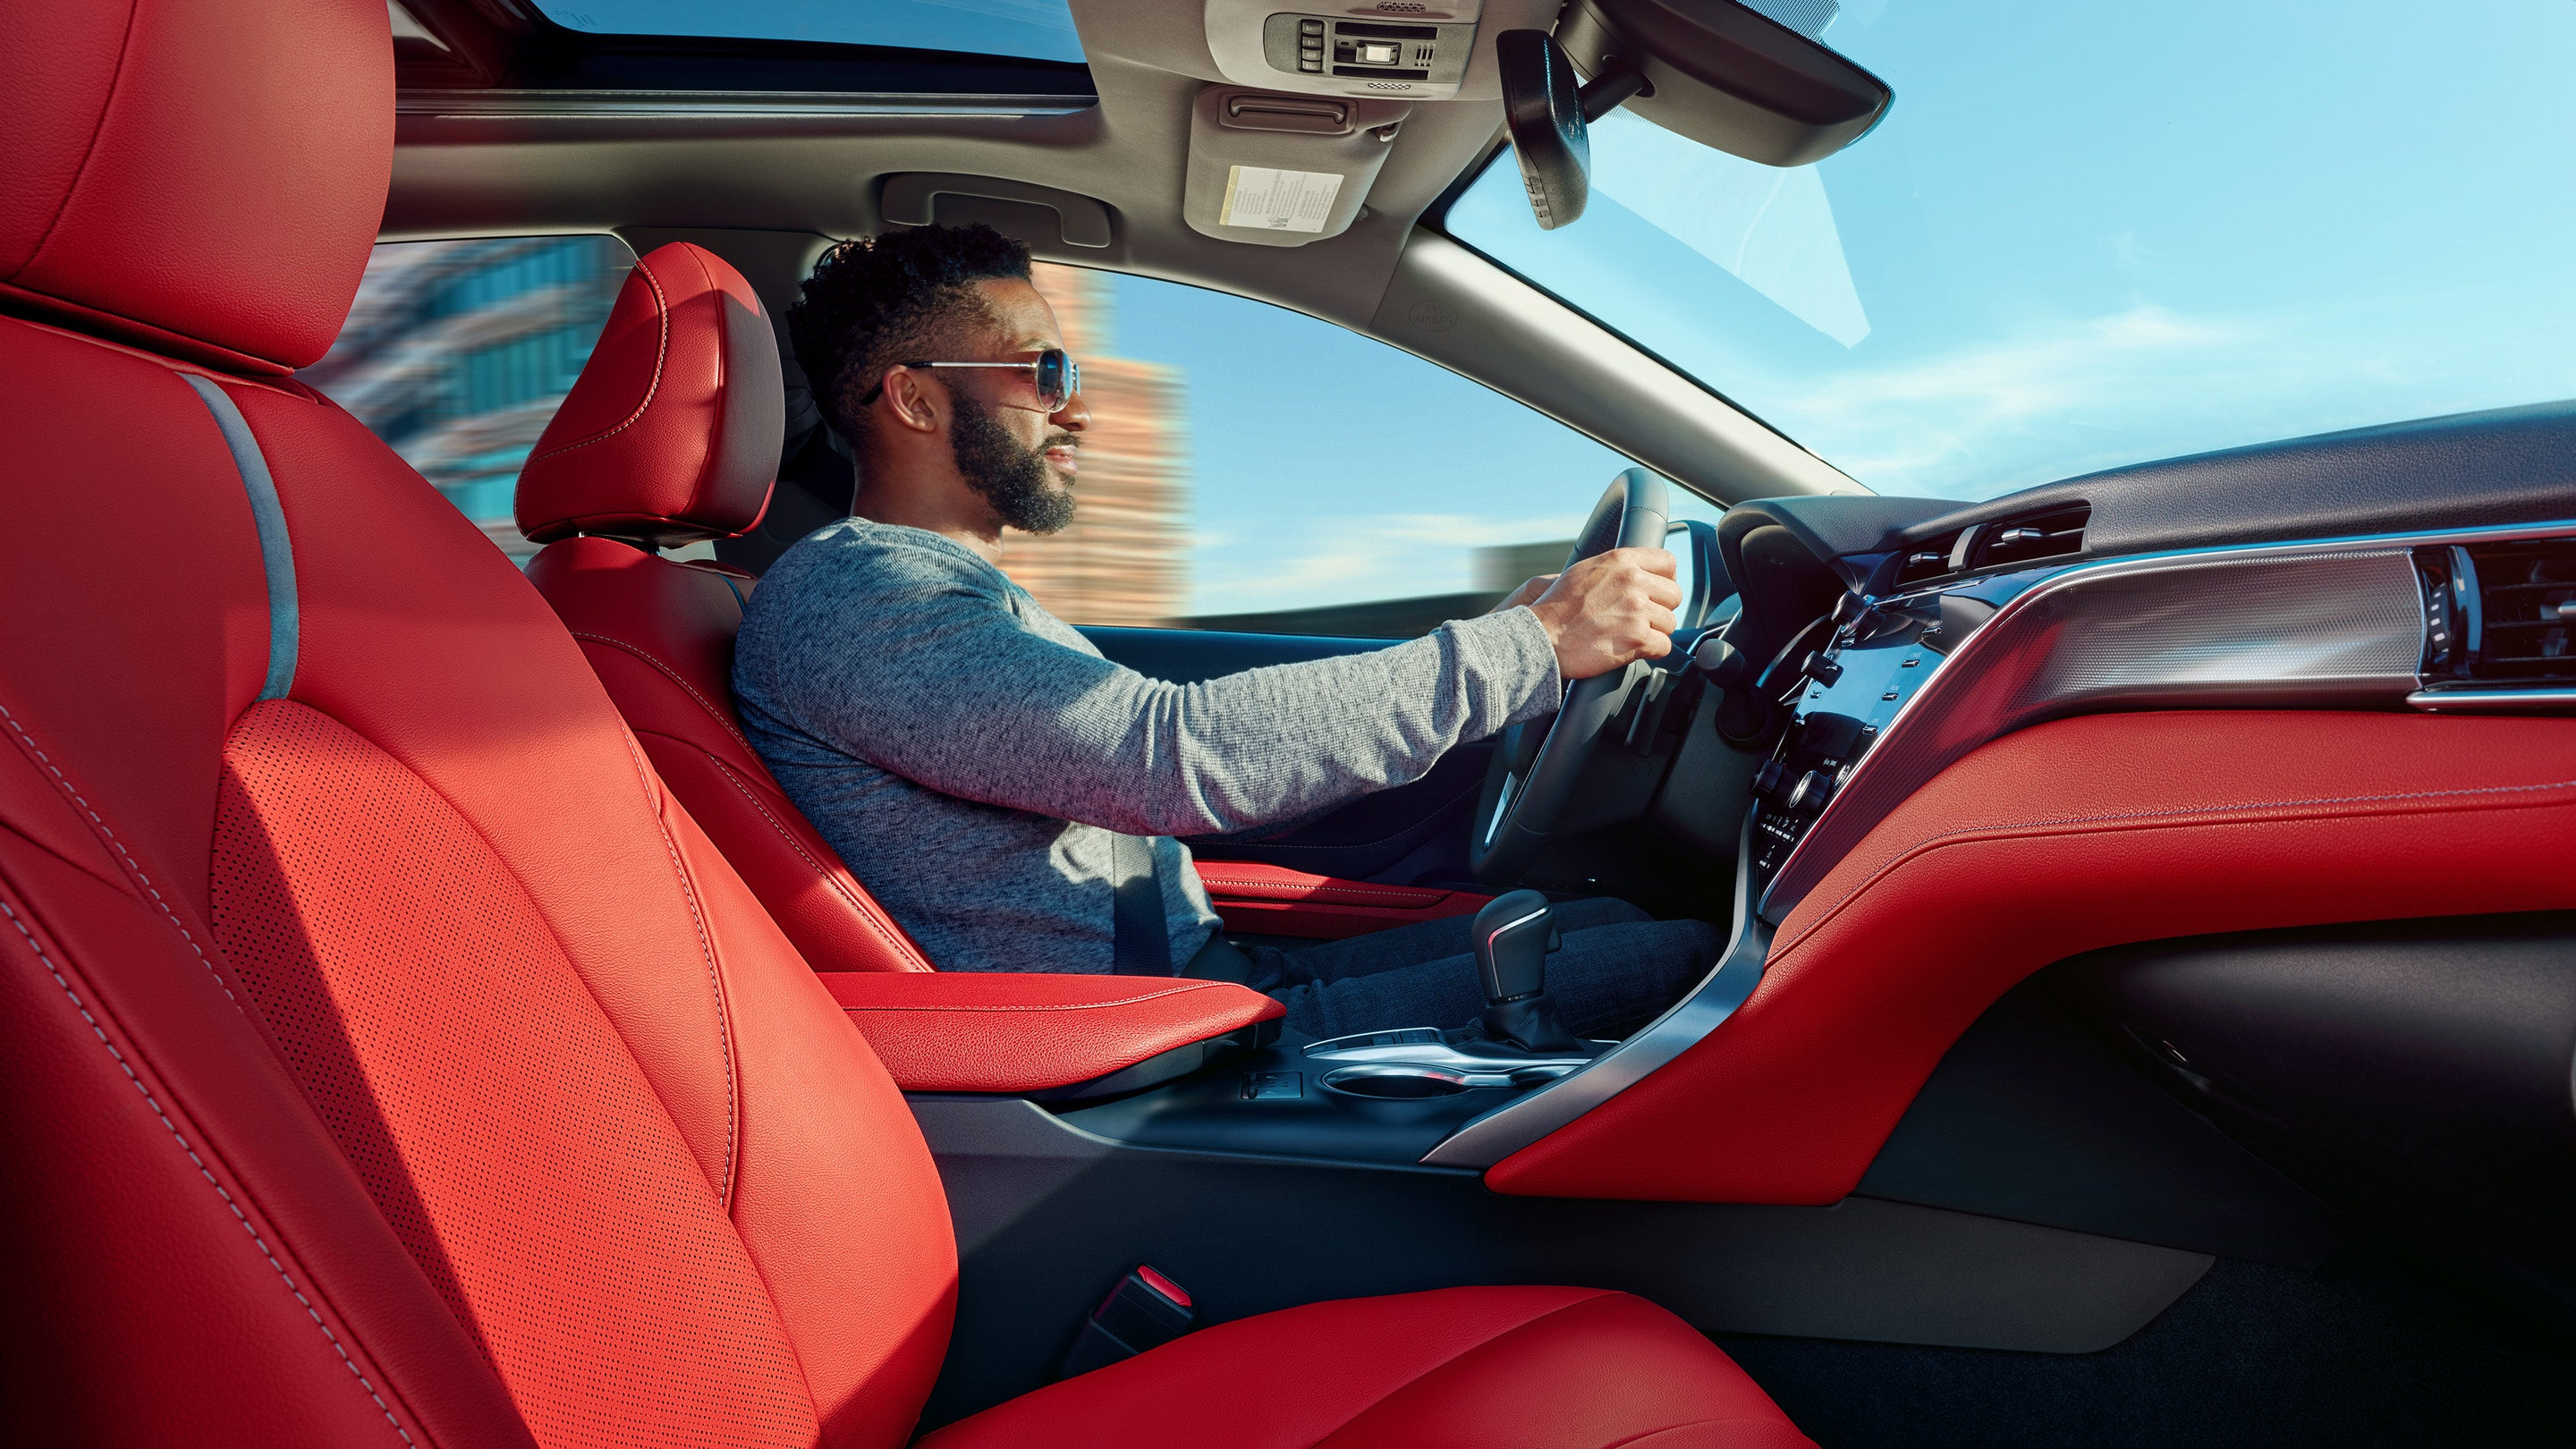 The Secure Cabin of the 2019 Camry